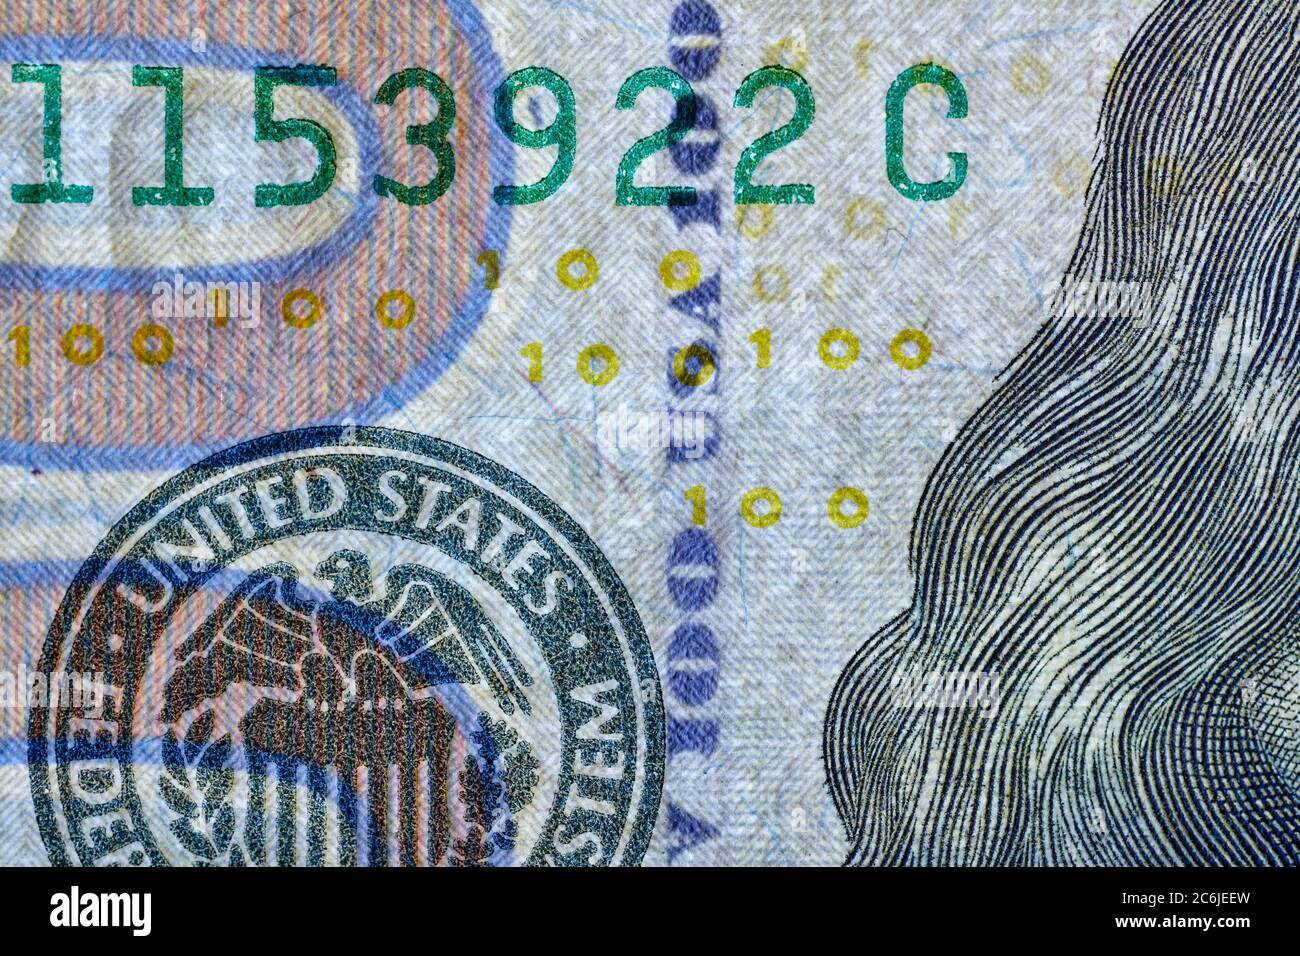 Security thread imprinted with alternating letters USA and the numeral 100 used on US$100 banknote (2009 A series) as a security feature. Stock Photo